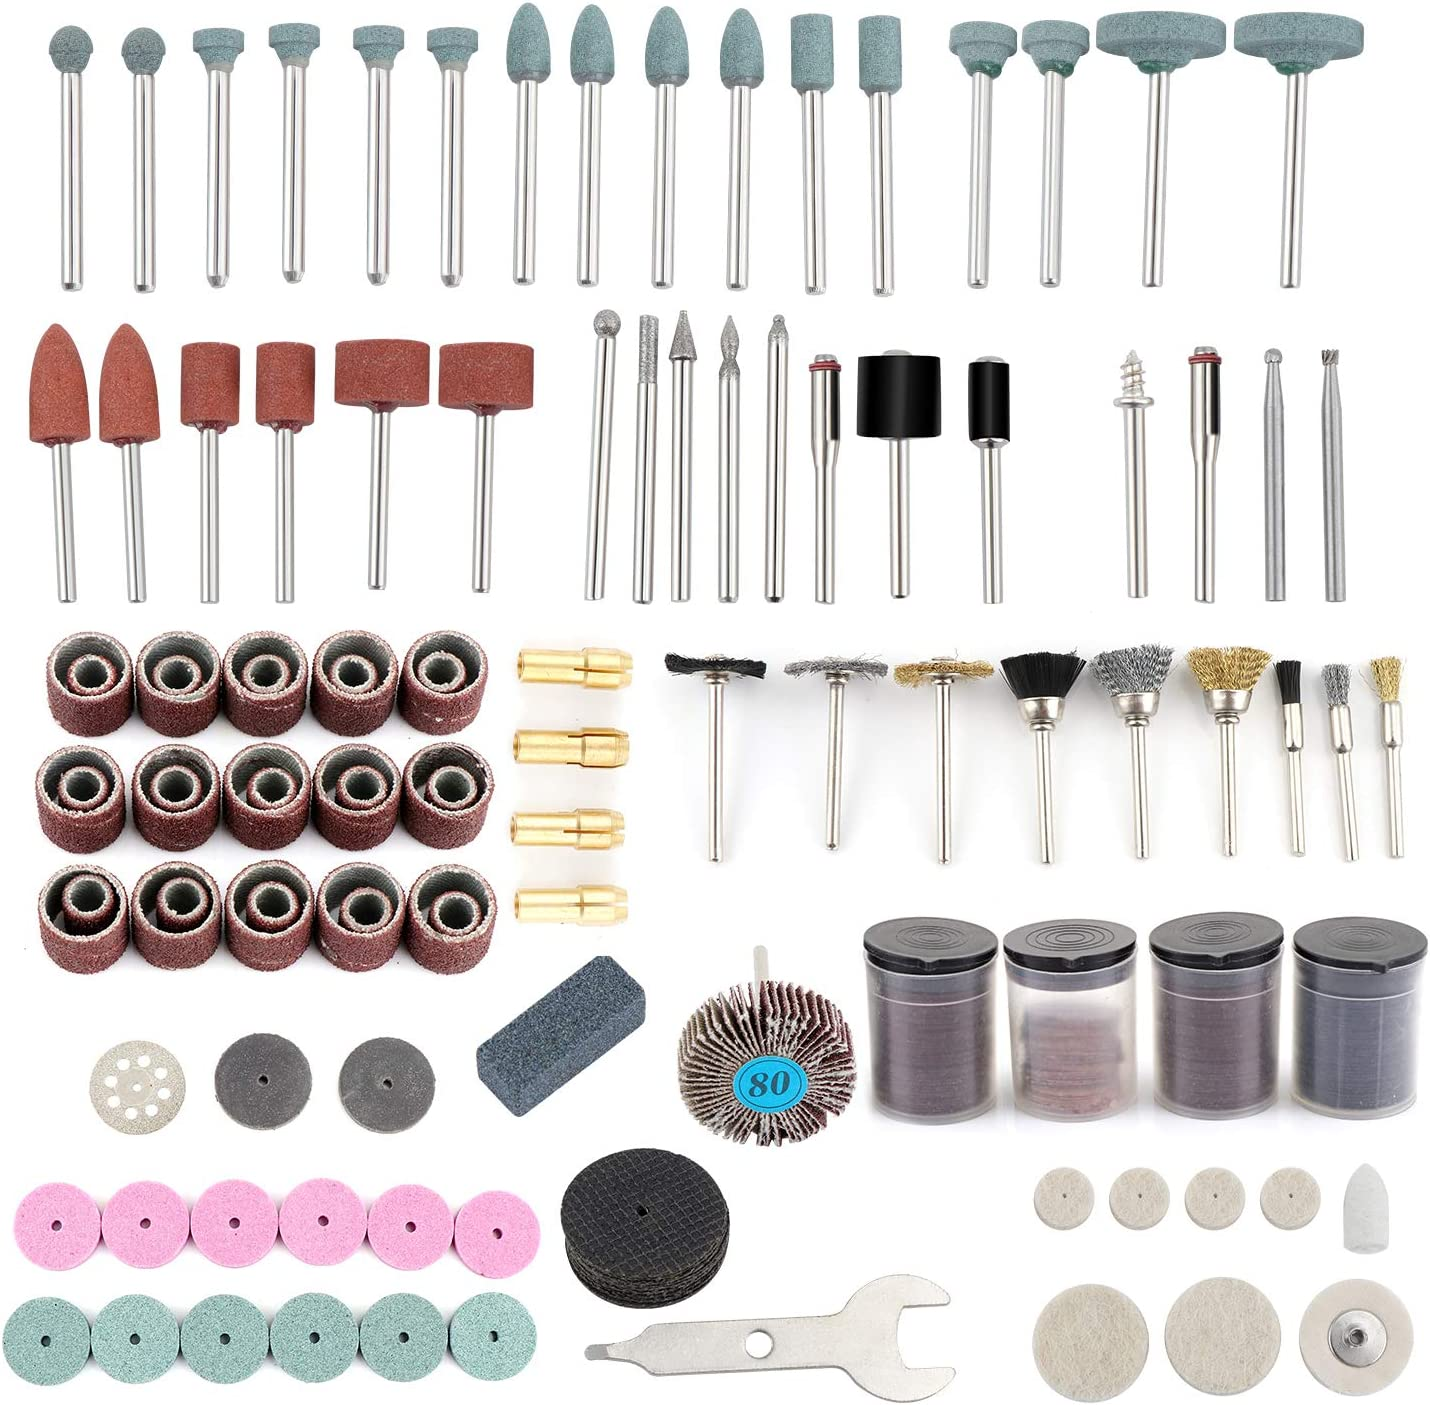 Sharpening Carving and Polishing HSEAMALL 216pcs Rotary Tool Accessory Kit,Dremel Accessories 1//8 Diameter Shanks Universal Fitment Cutting Grinding Sanding